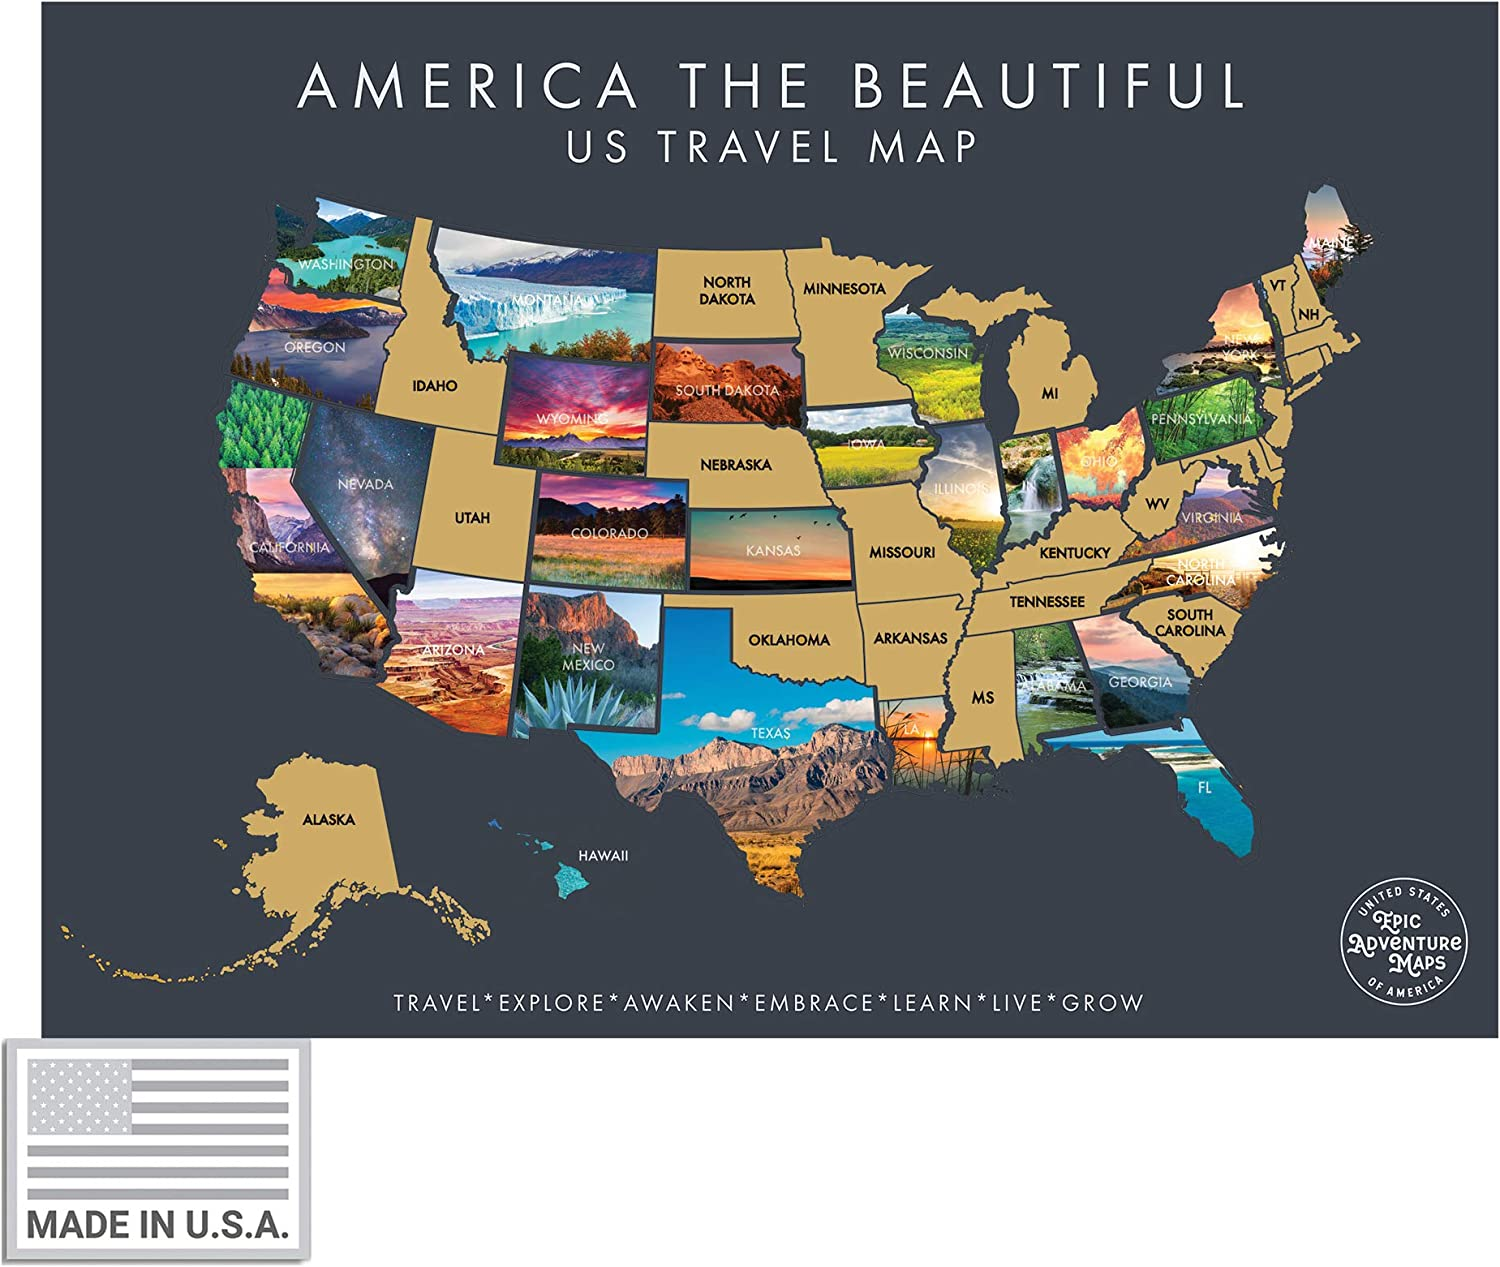 Epic Adventure Maps America The Beautiful USA Scratch Off Map- Interactive Travel Scratch Off Poster Reveals Beautiful Nature Photography of Each 50 States - Travel Poster - Great Gift for Travelers